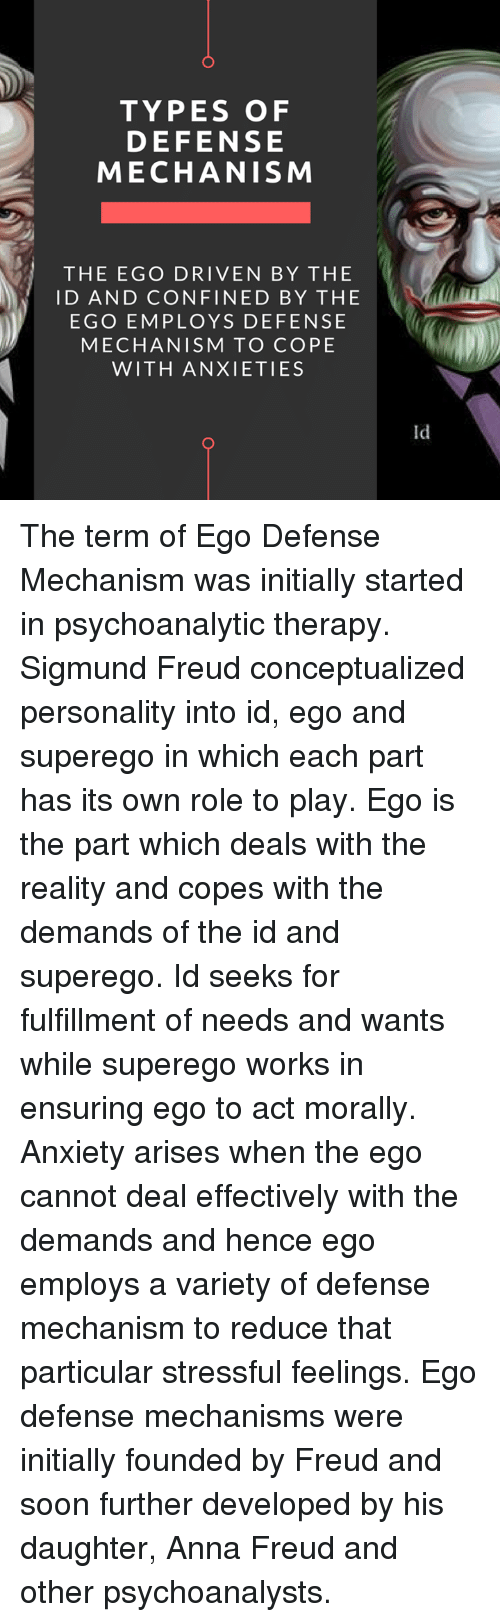 types of defense mechanism the ego driven by the id and confined by